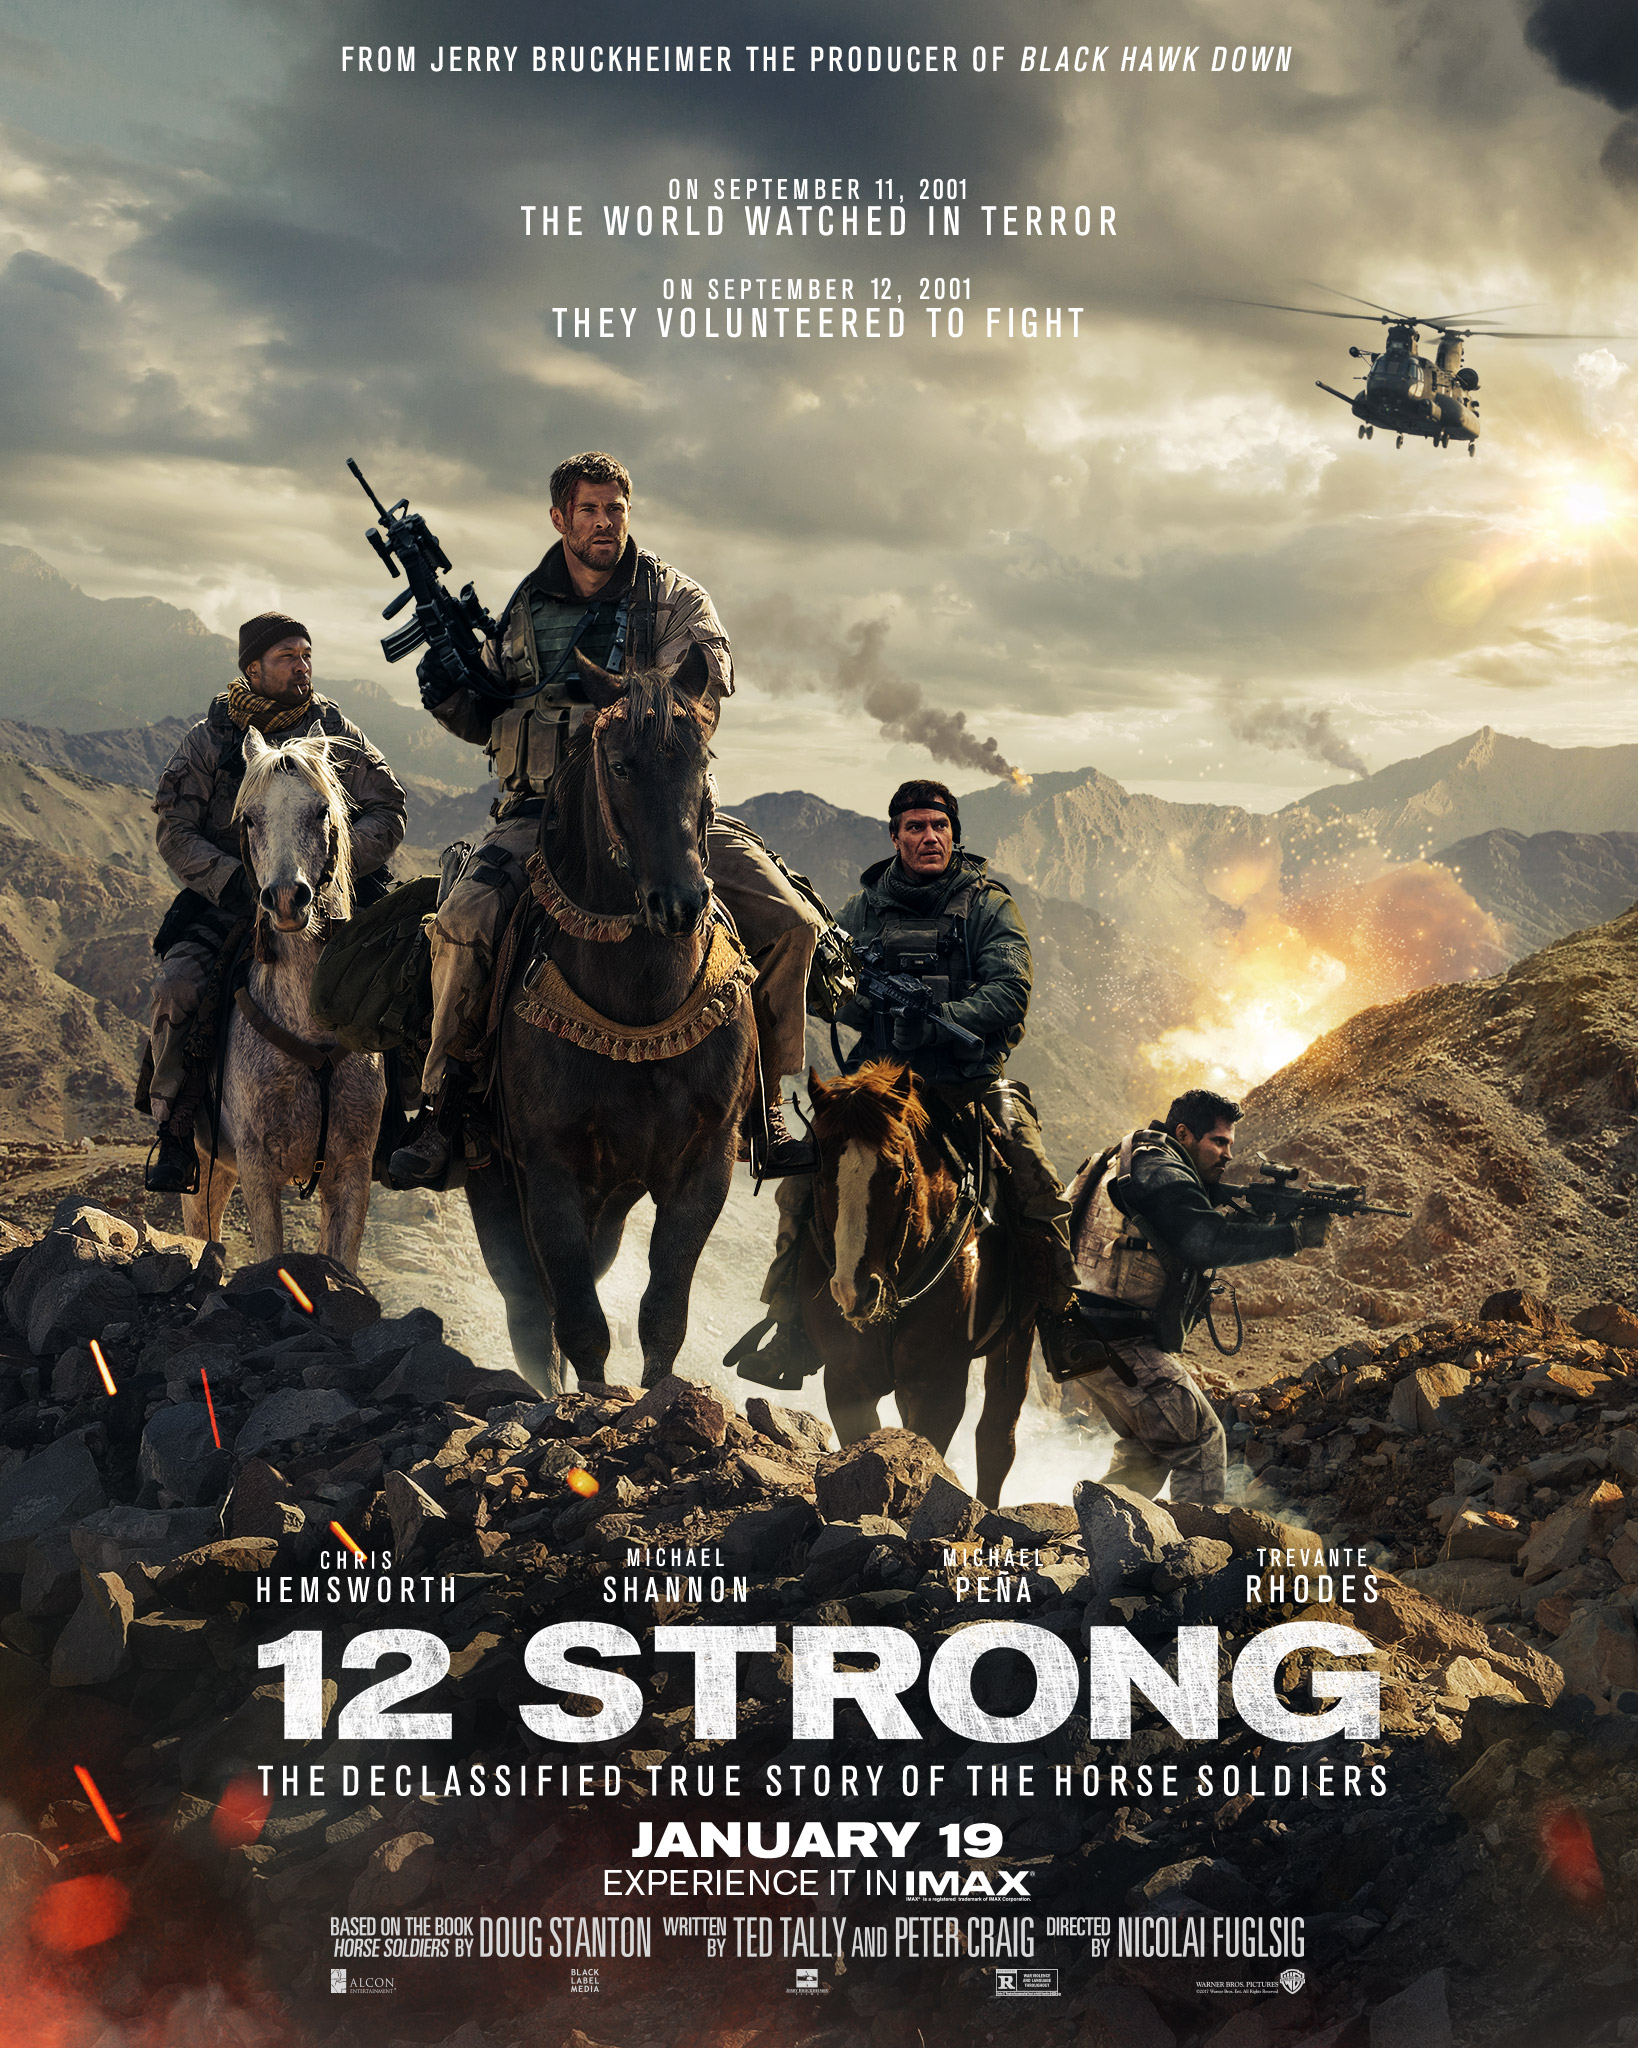 12 strong spoiler free movie review